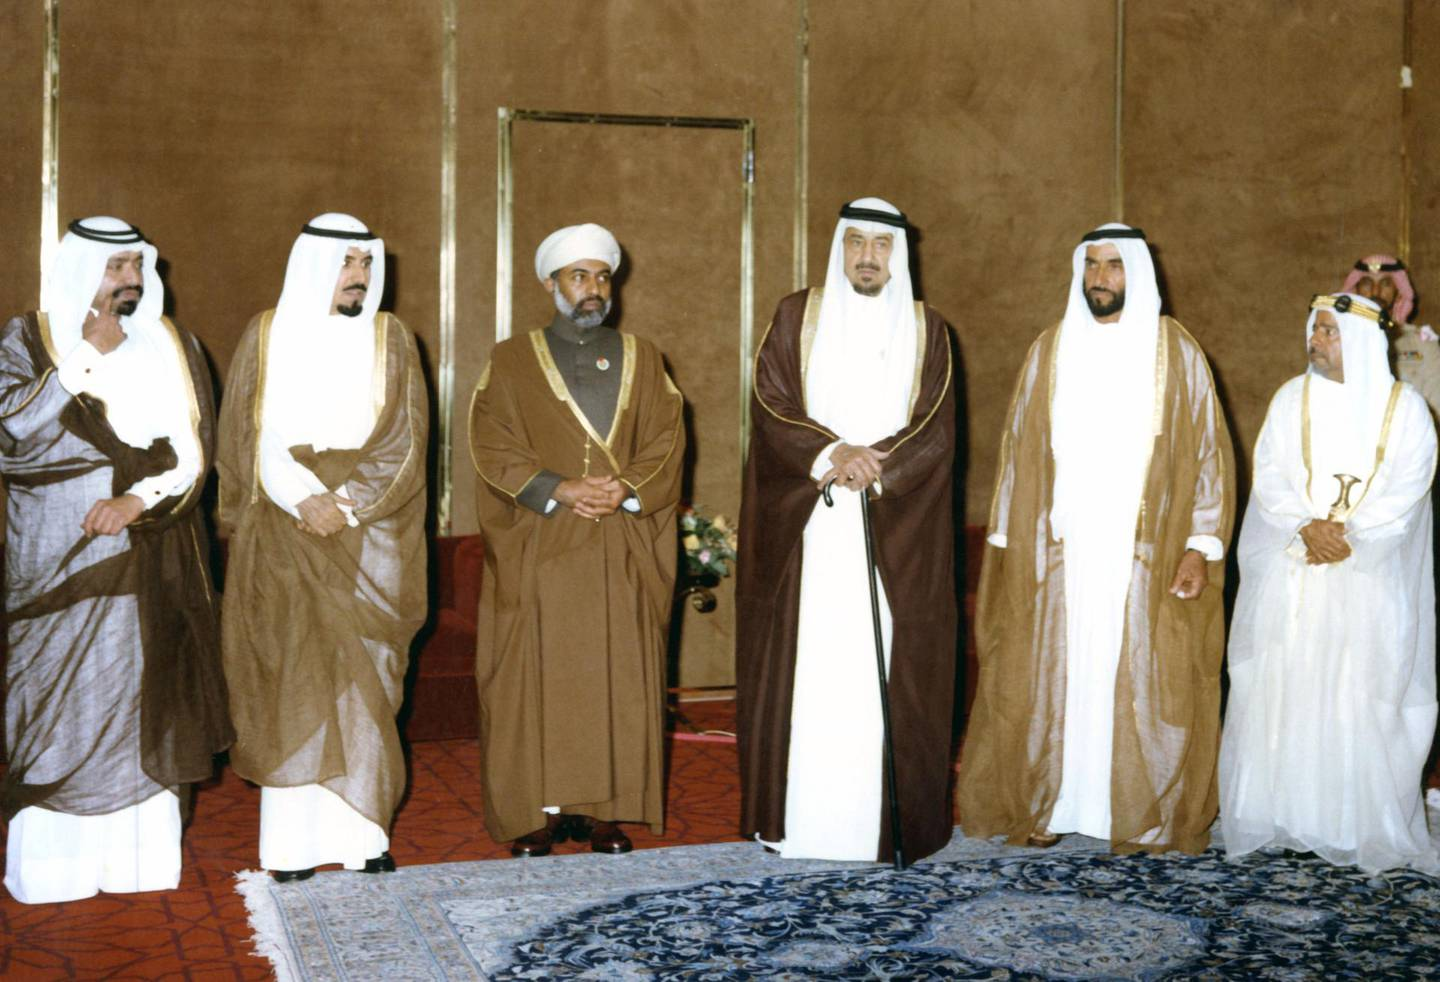 Sheikh Zayed Bin Sultan Al Nahyan with the Rulers of the GCC countries during the first Summit in Abu Dhabi, 1981  National Archives images supplied by the Ministry of Presidential Affairs to mark the 50th anniverary of Sheikh Zayed Bin Sultan Al Nahyan becaming the Ruler of Abu Dhabi. *** Local Caption ***  59.jpg